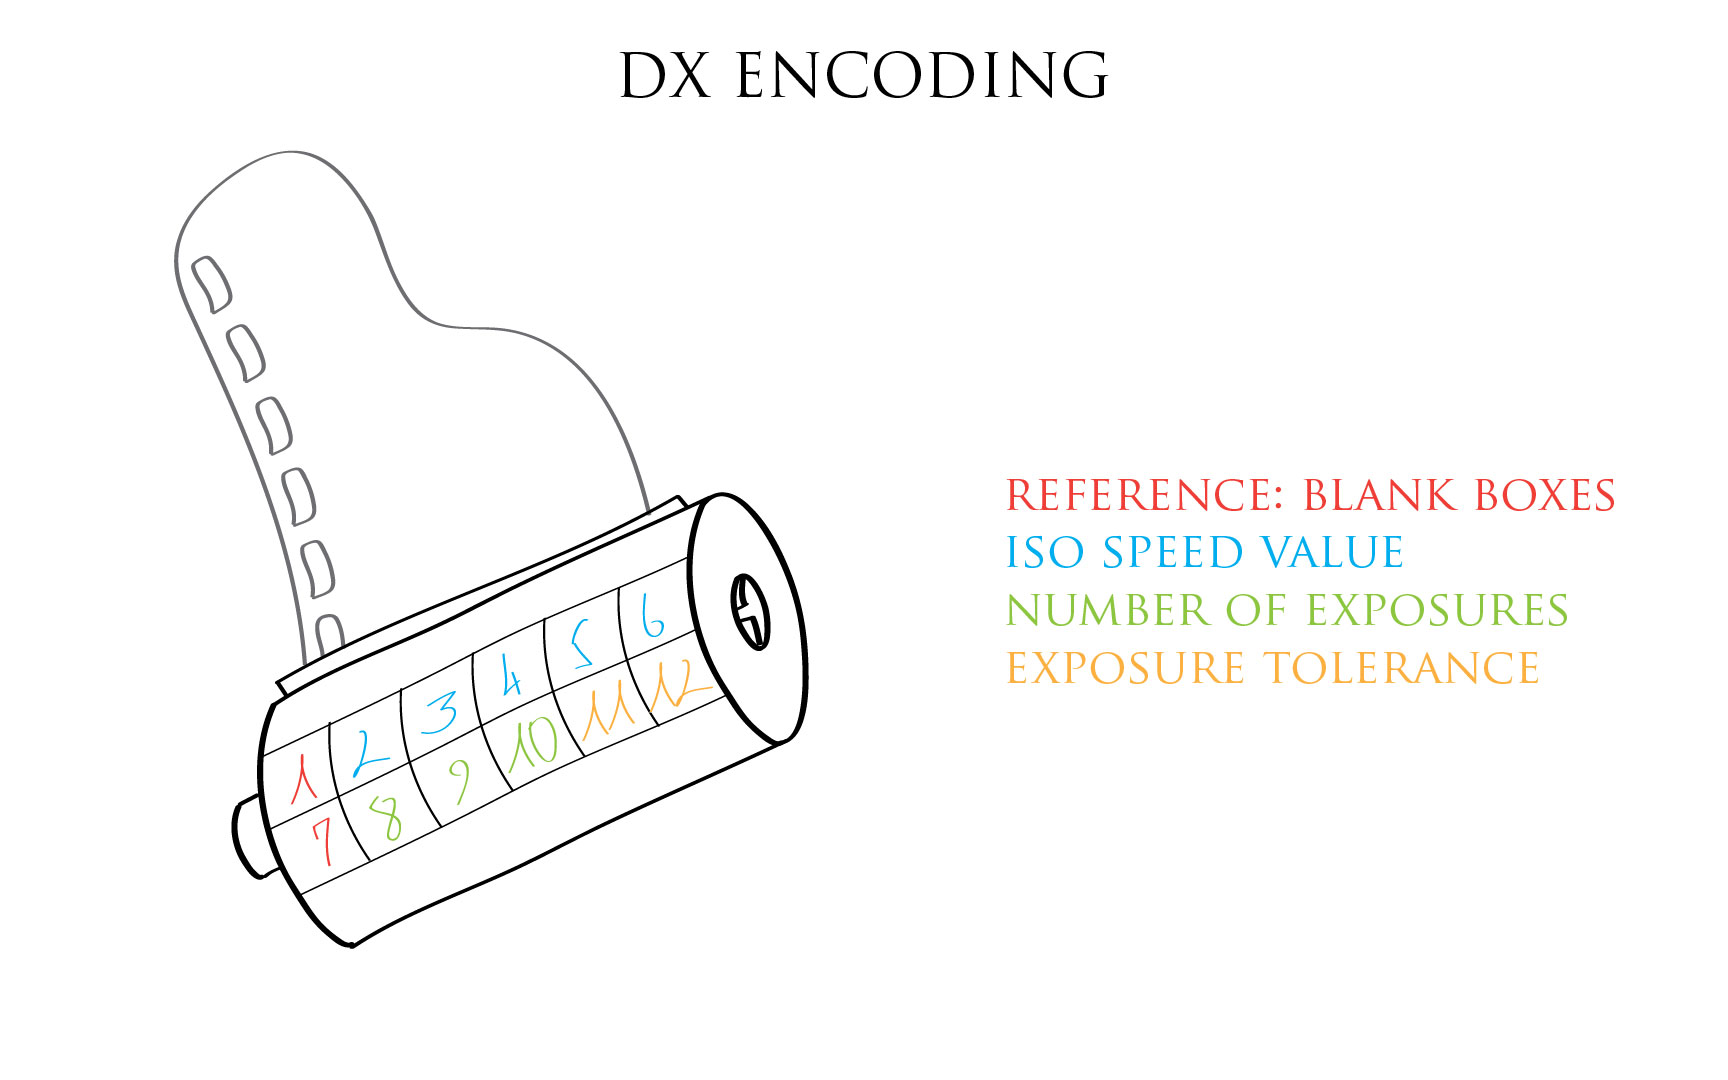 Modifying the DX code of a film